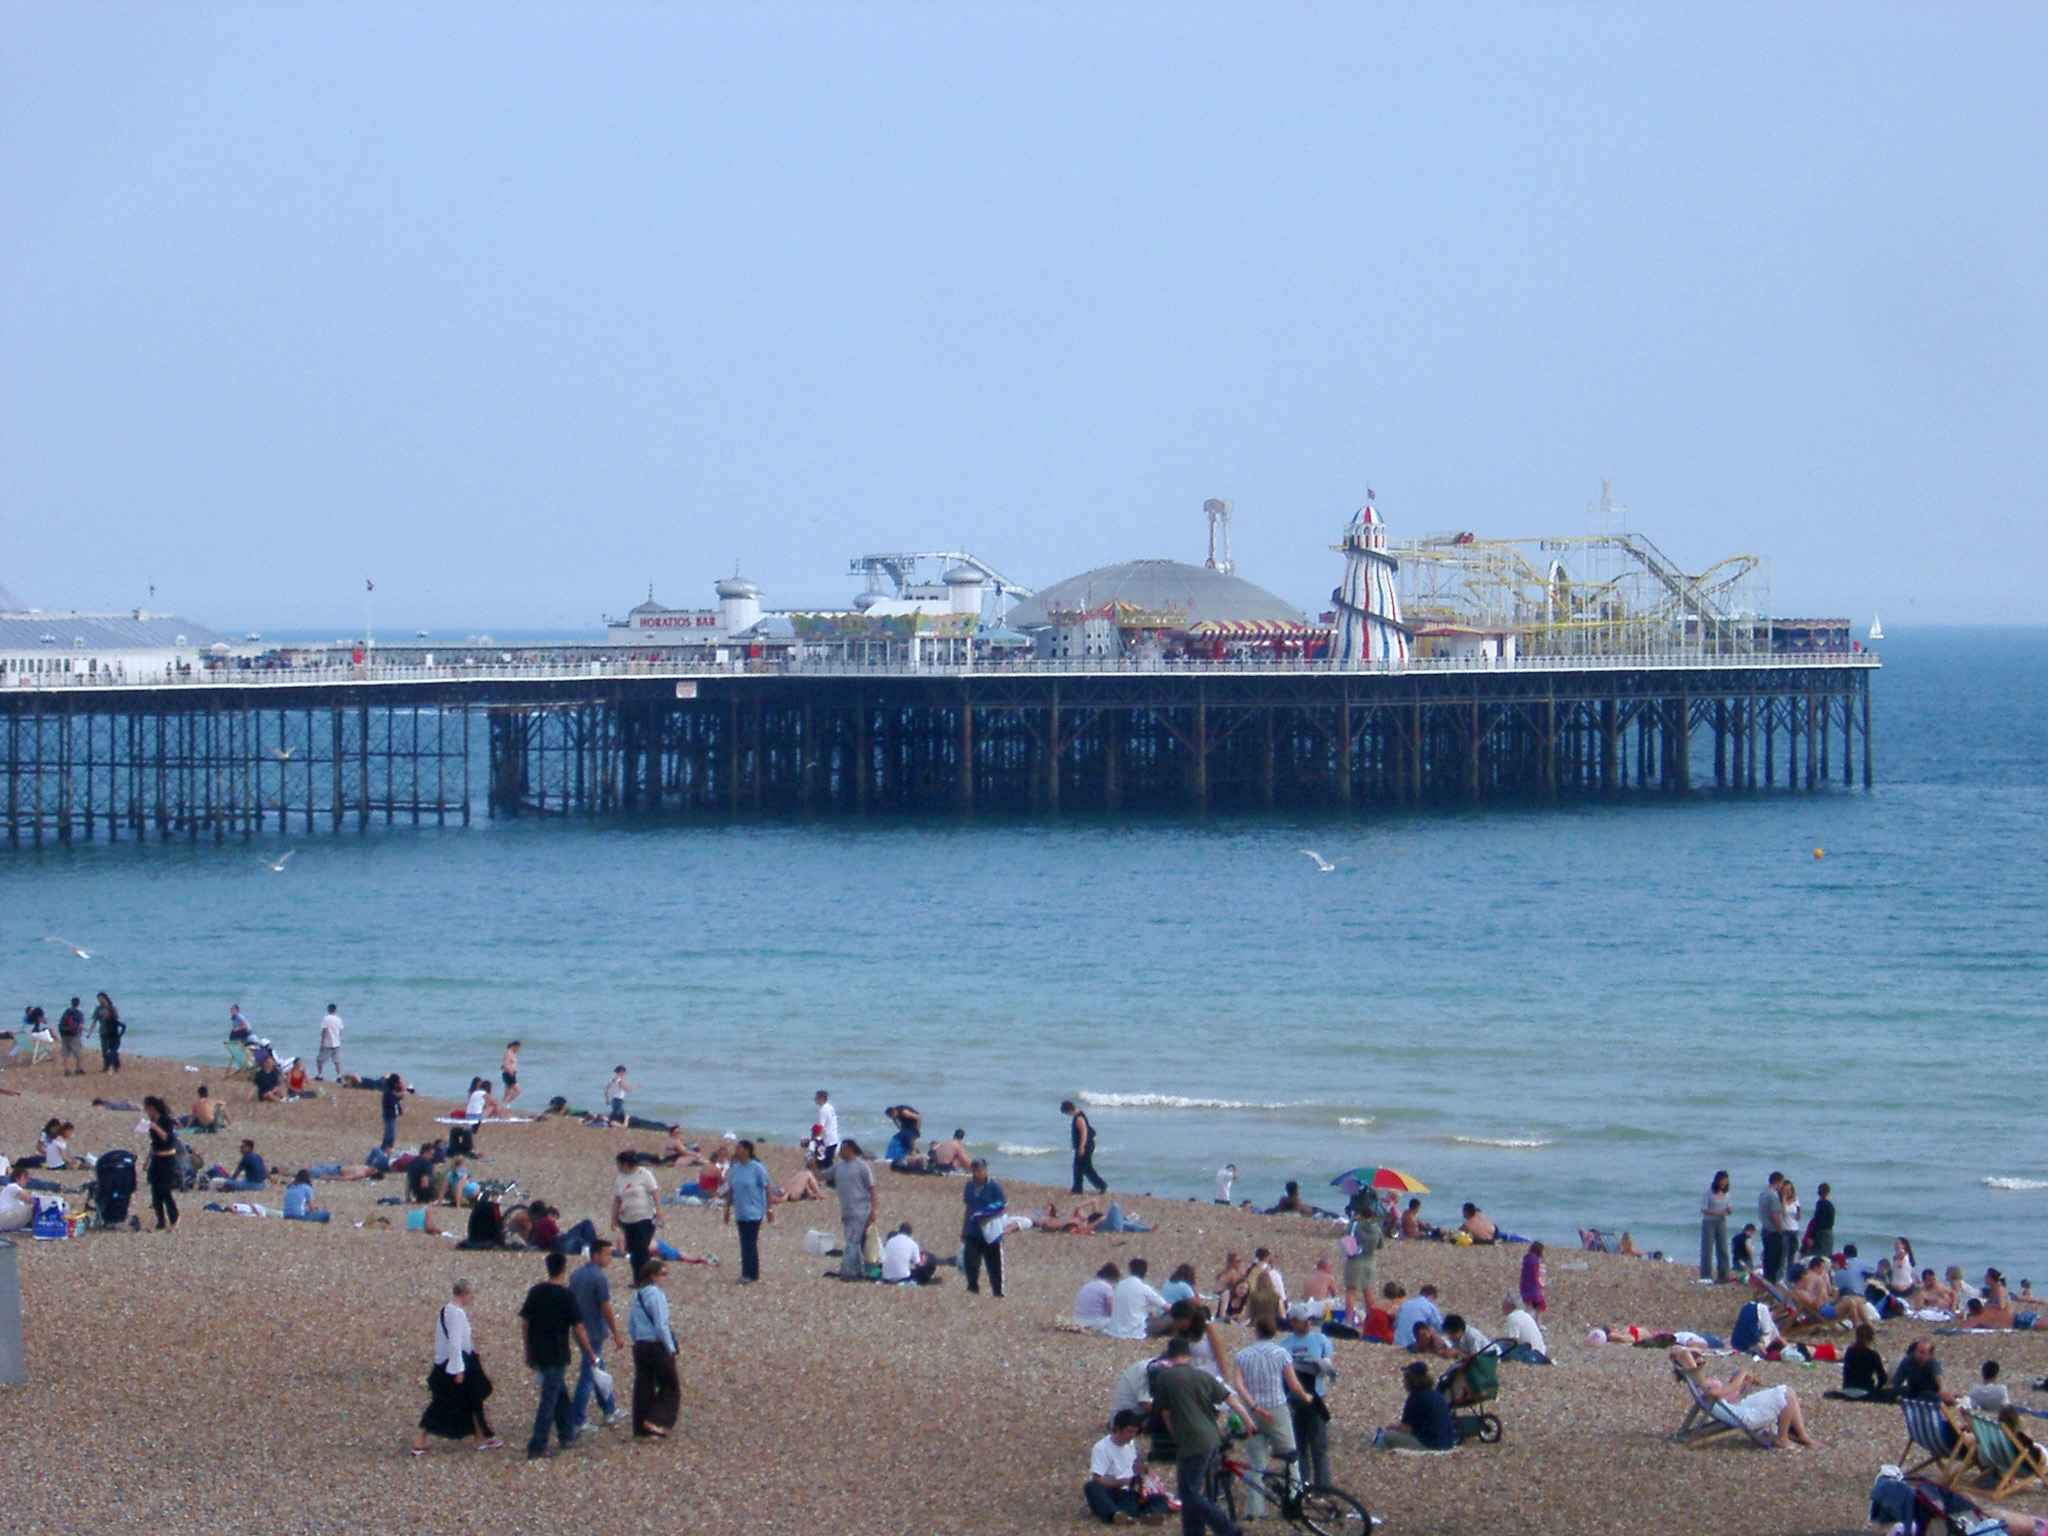 View from the beach of Brighton pier with its amusement arcade and historical buildings which are a popular tourist venue, people in the foreground on the sand